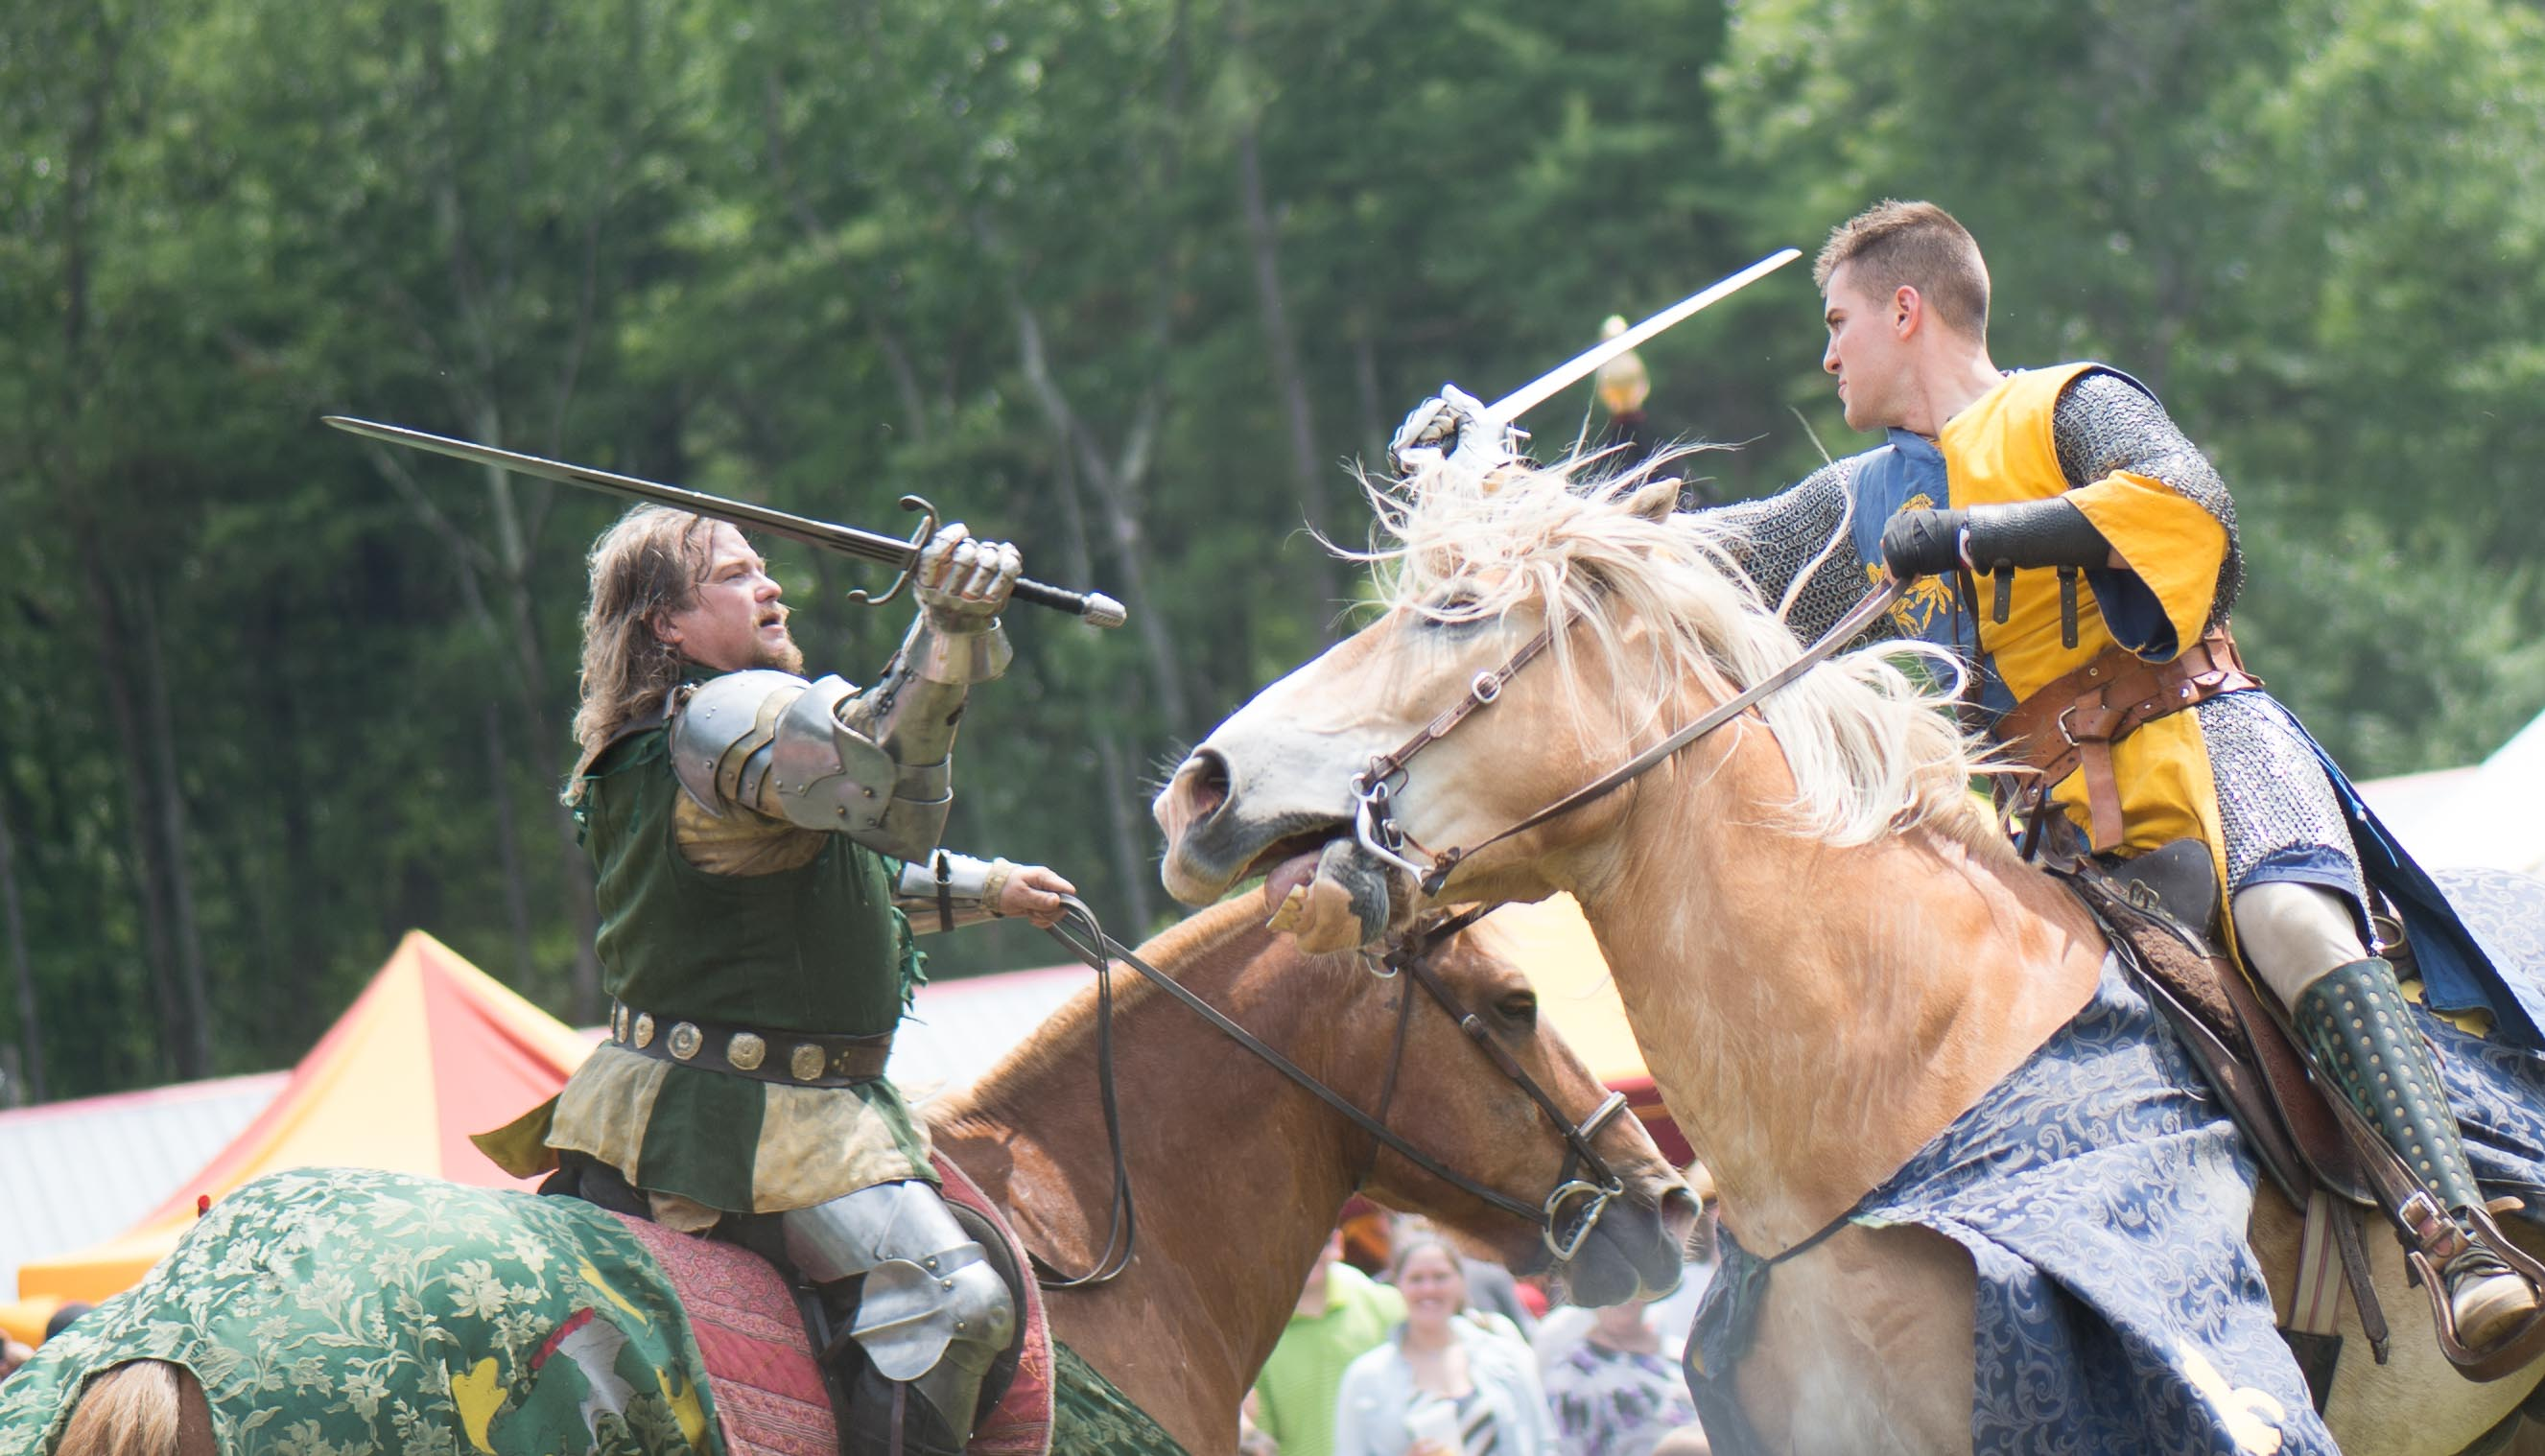 Palomino horse during a joust fight at a Renaissance Festival.